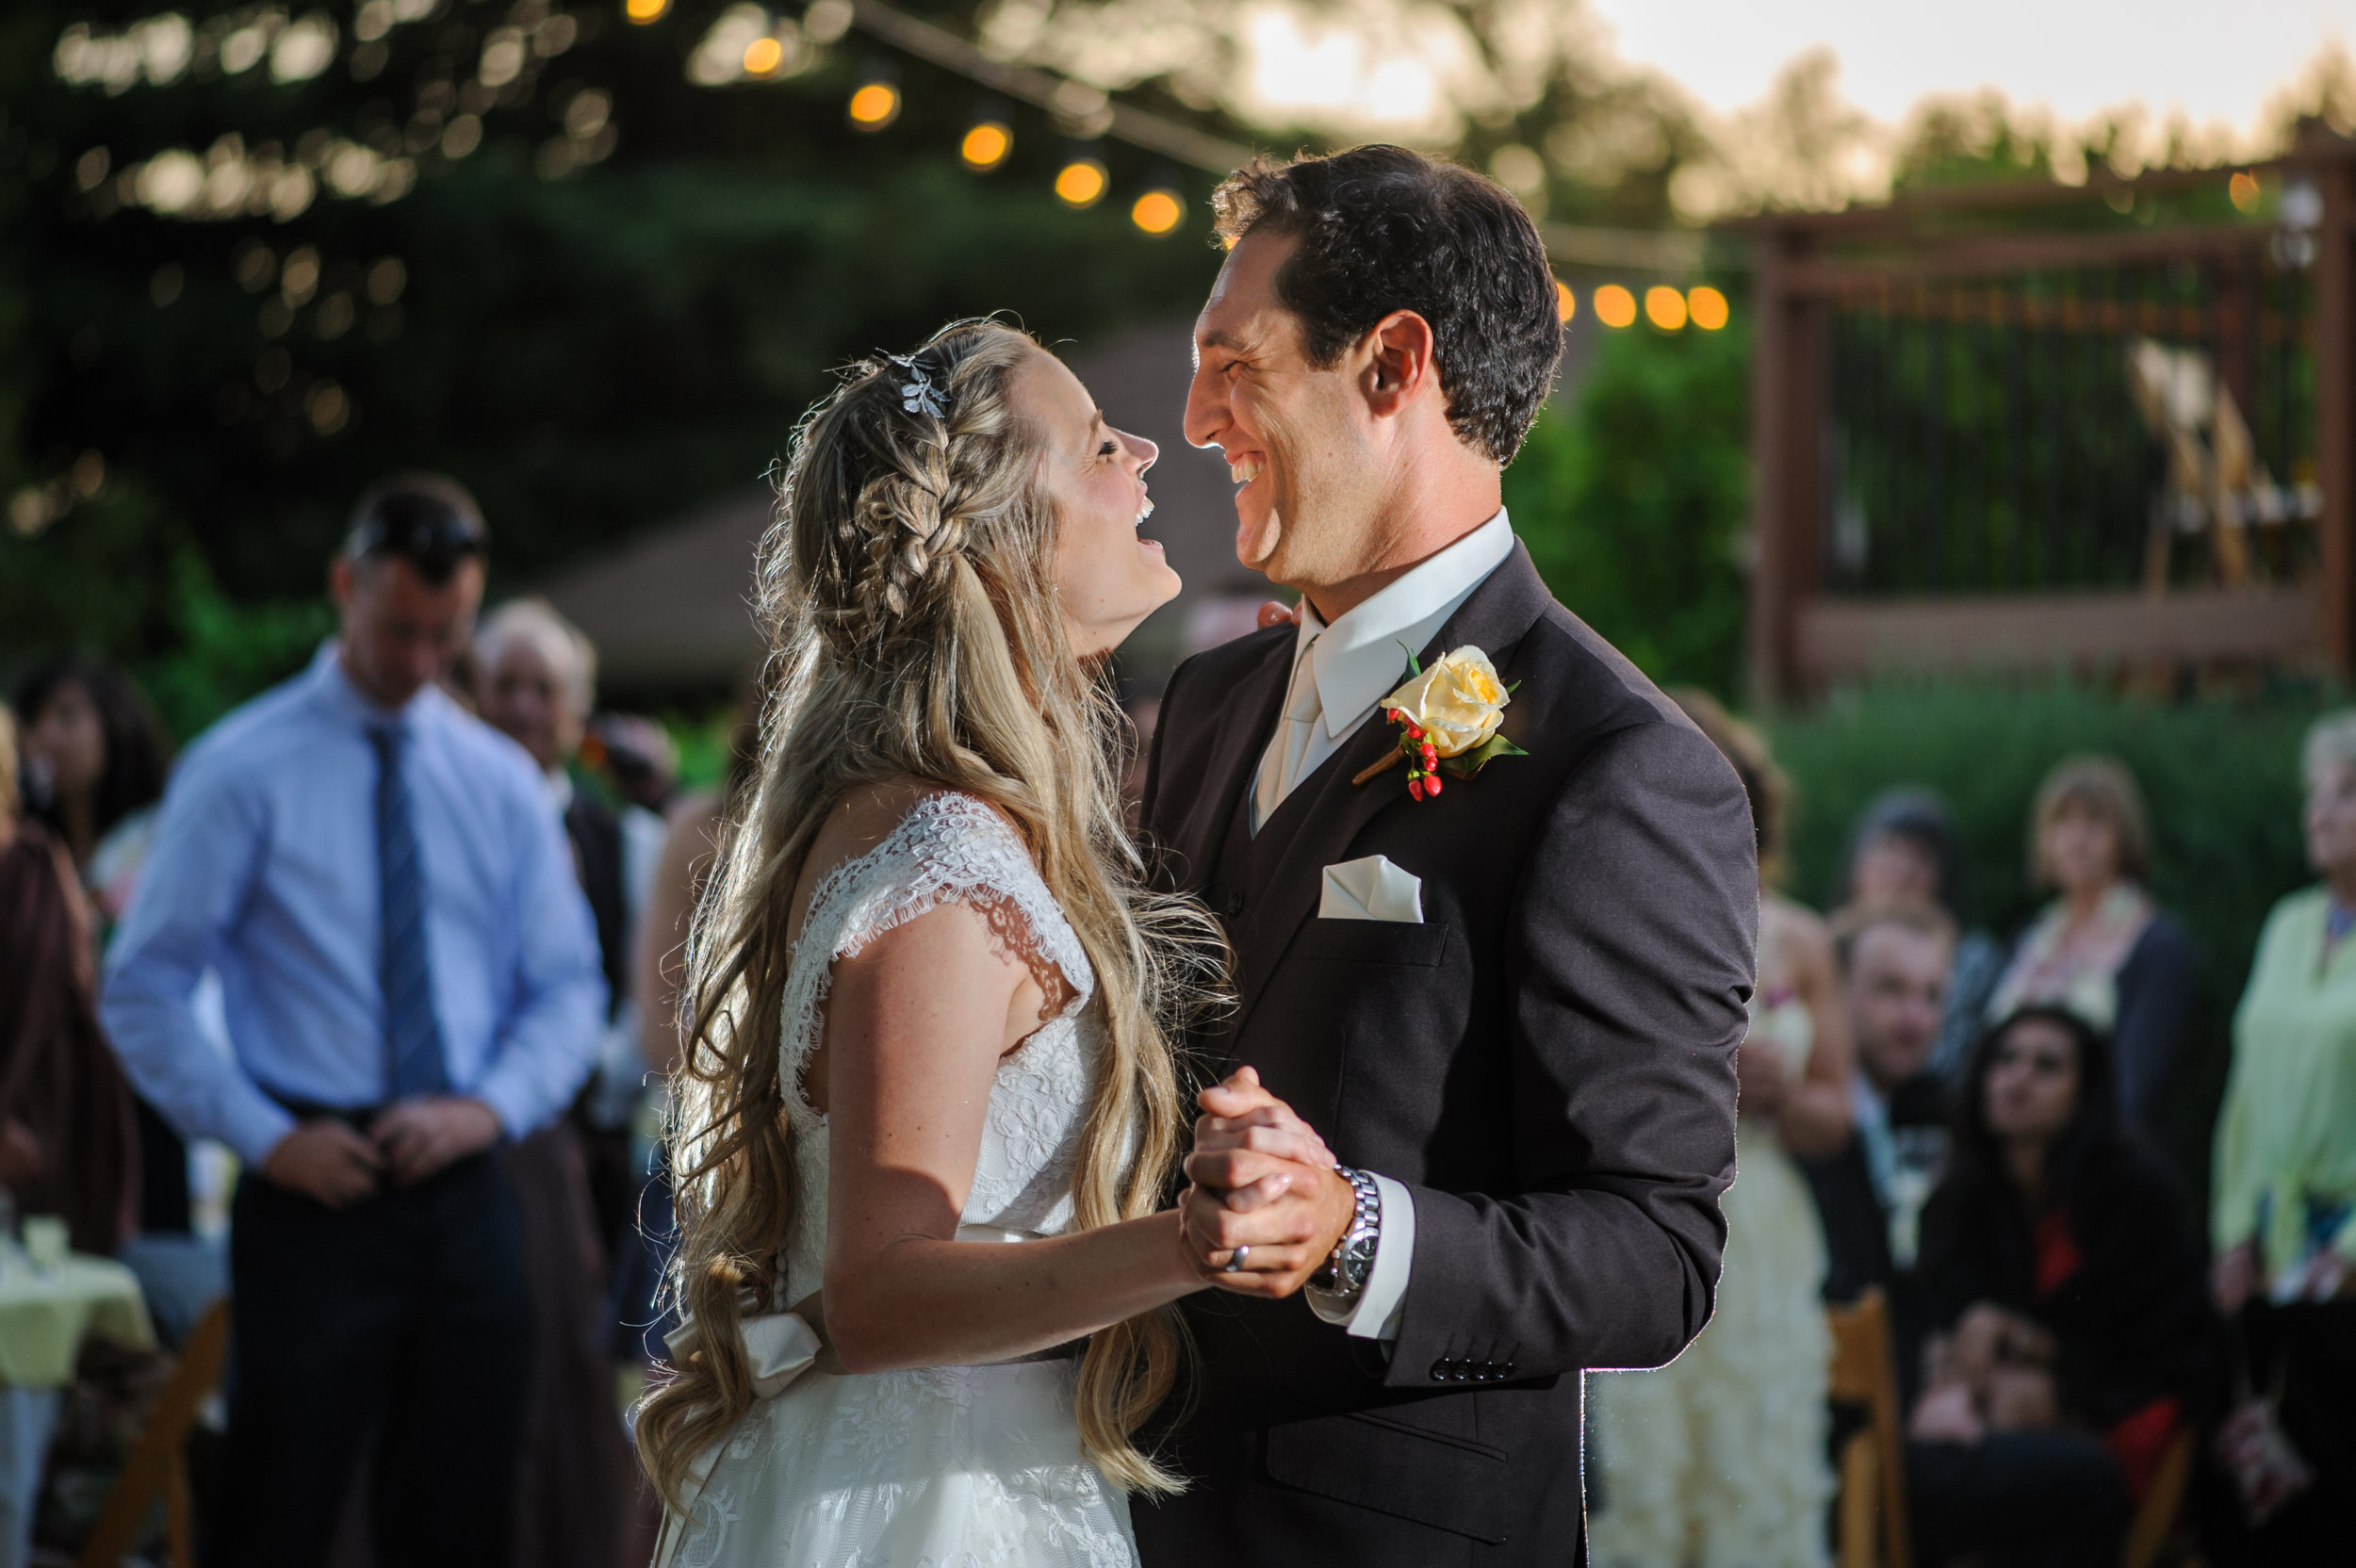 mara-chris-044-backyard-sonoma-wedding-photographer-katherine-nicole-photography.JPG